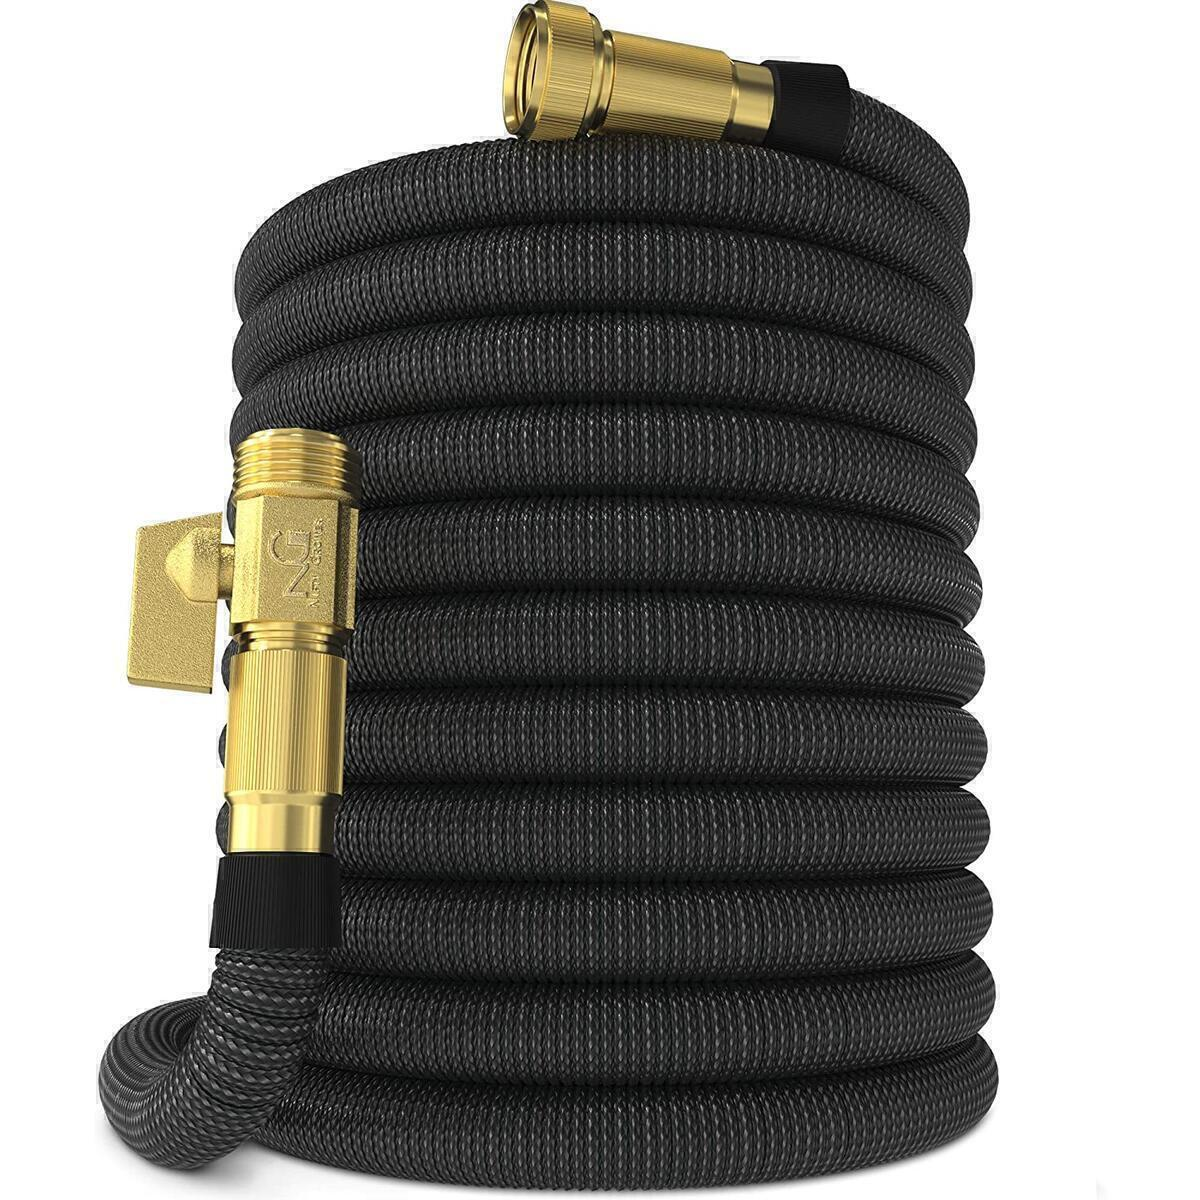 Nifty Grower 100ft Garden Hose - New Expandable Water Hose with Double Latex Core 3/4